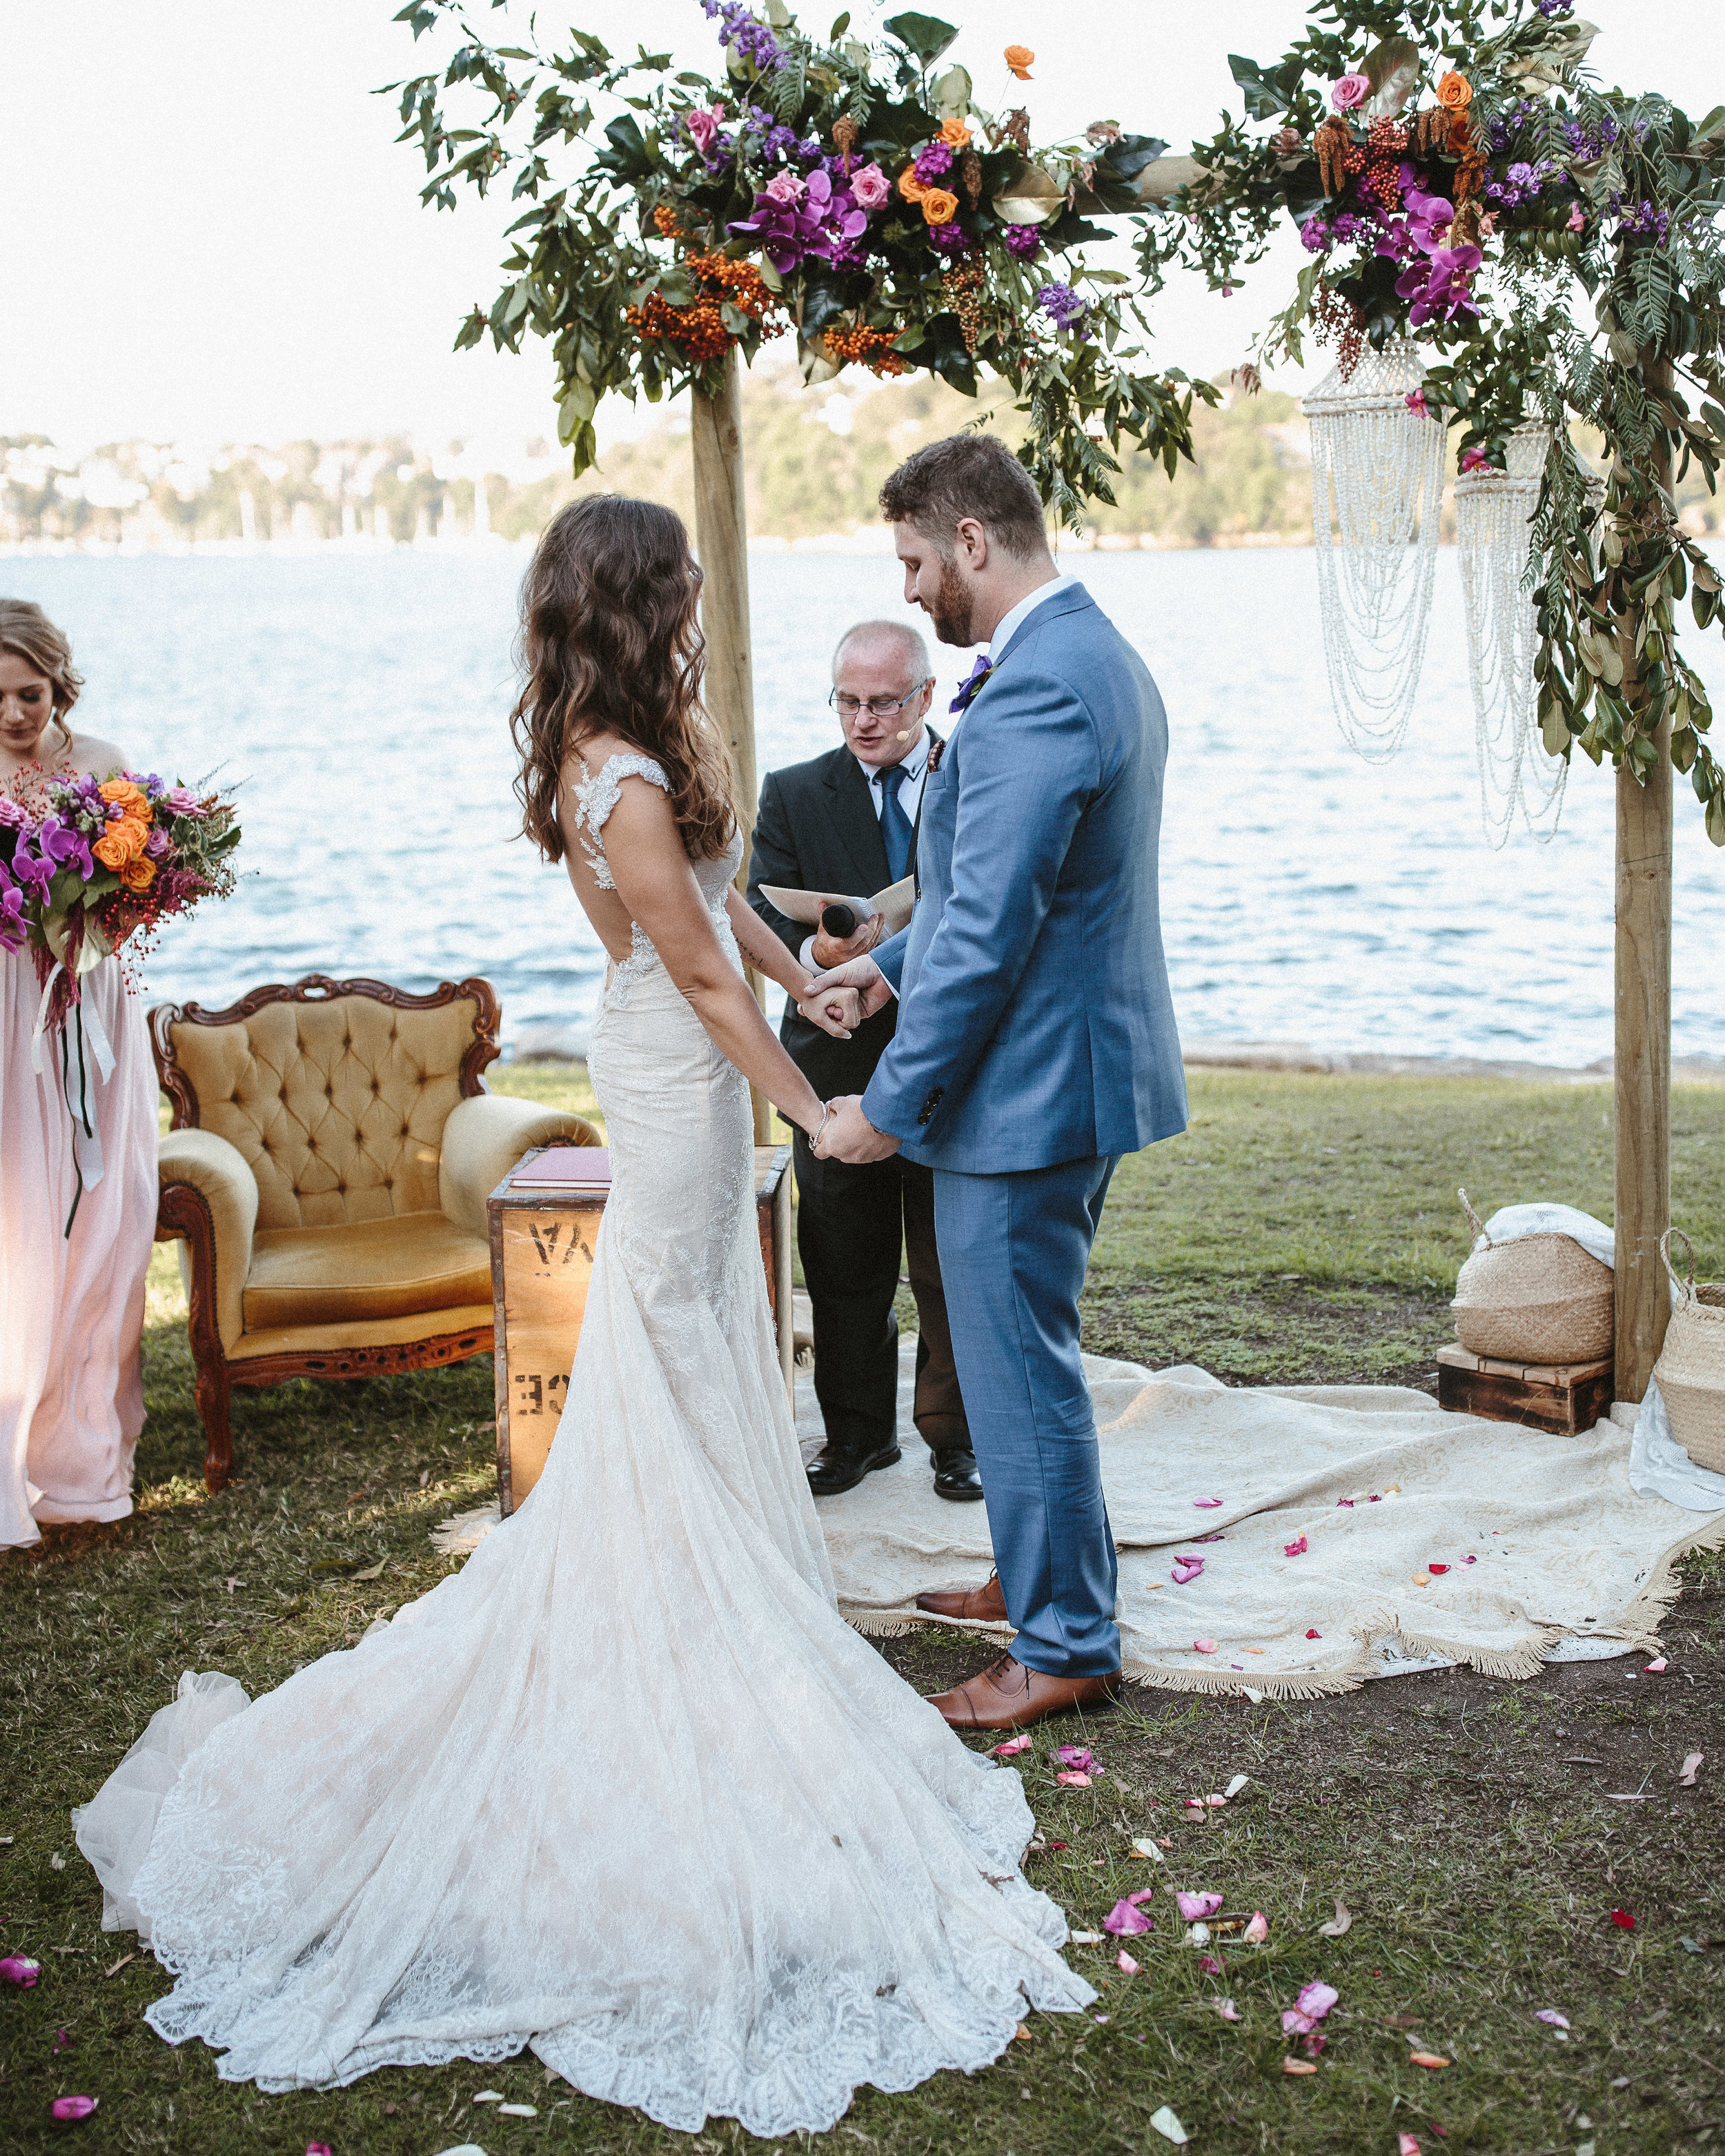 Bohemian Wedding Ceremony Sydney 2